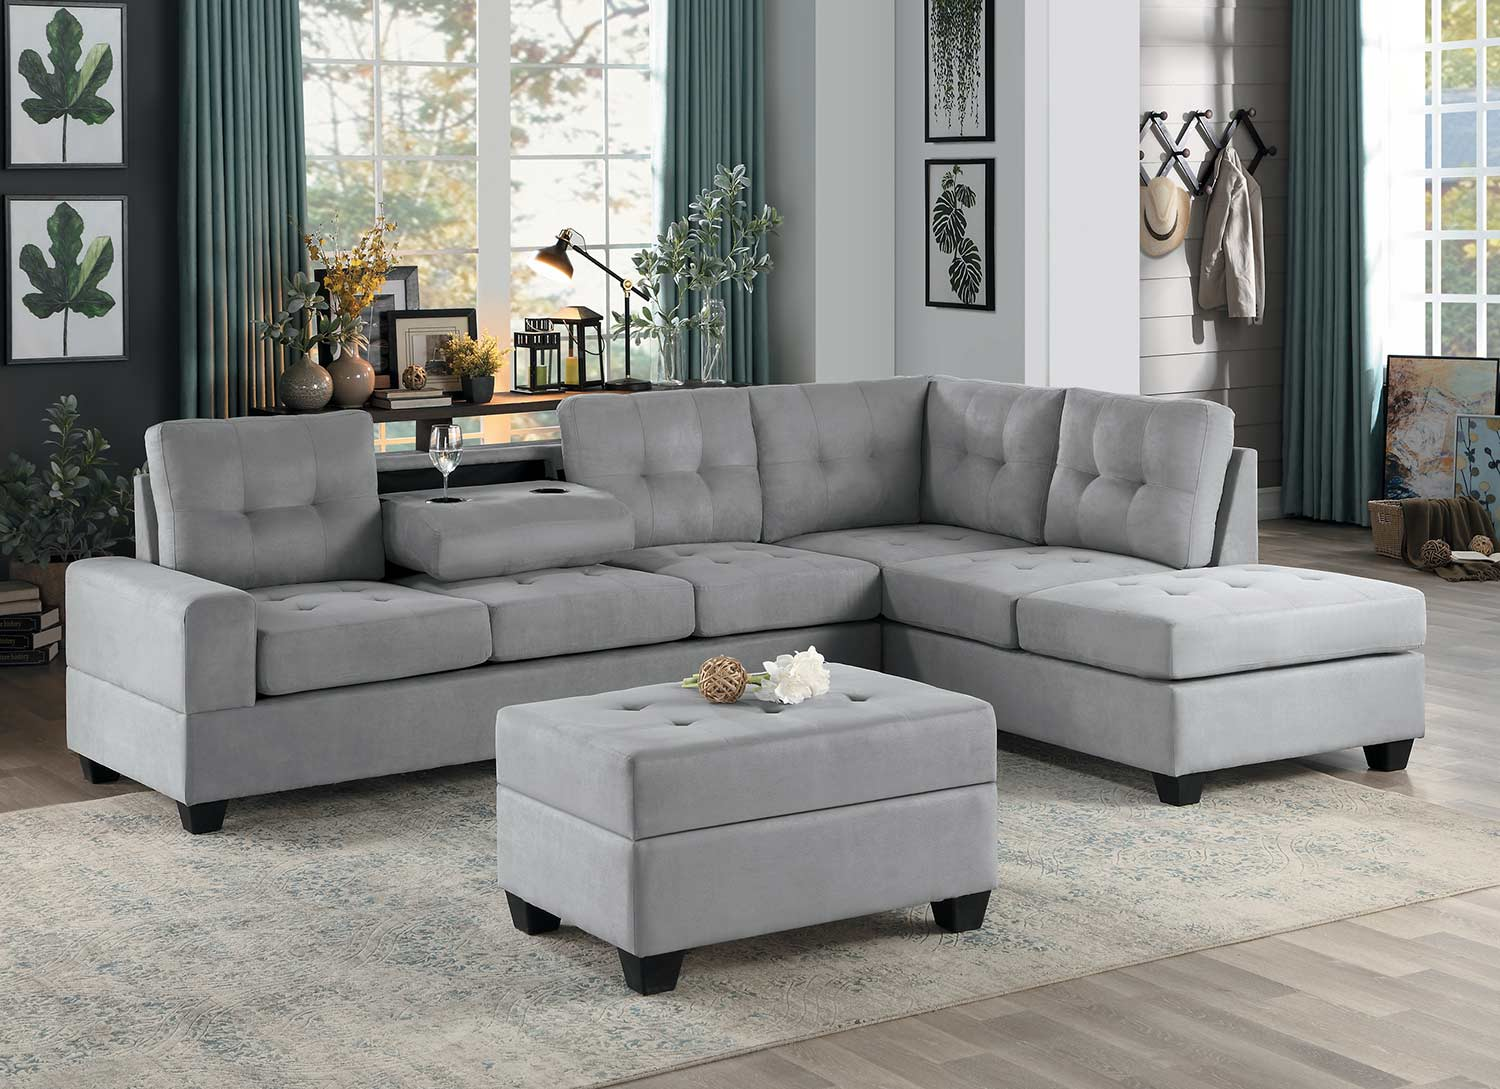 homelegance maston sectional sofa set light gray